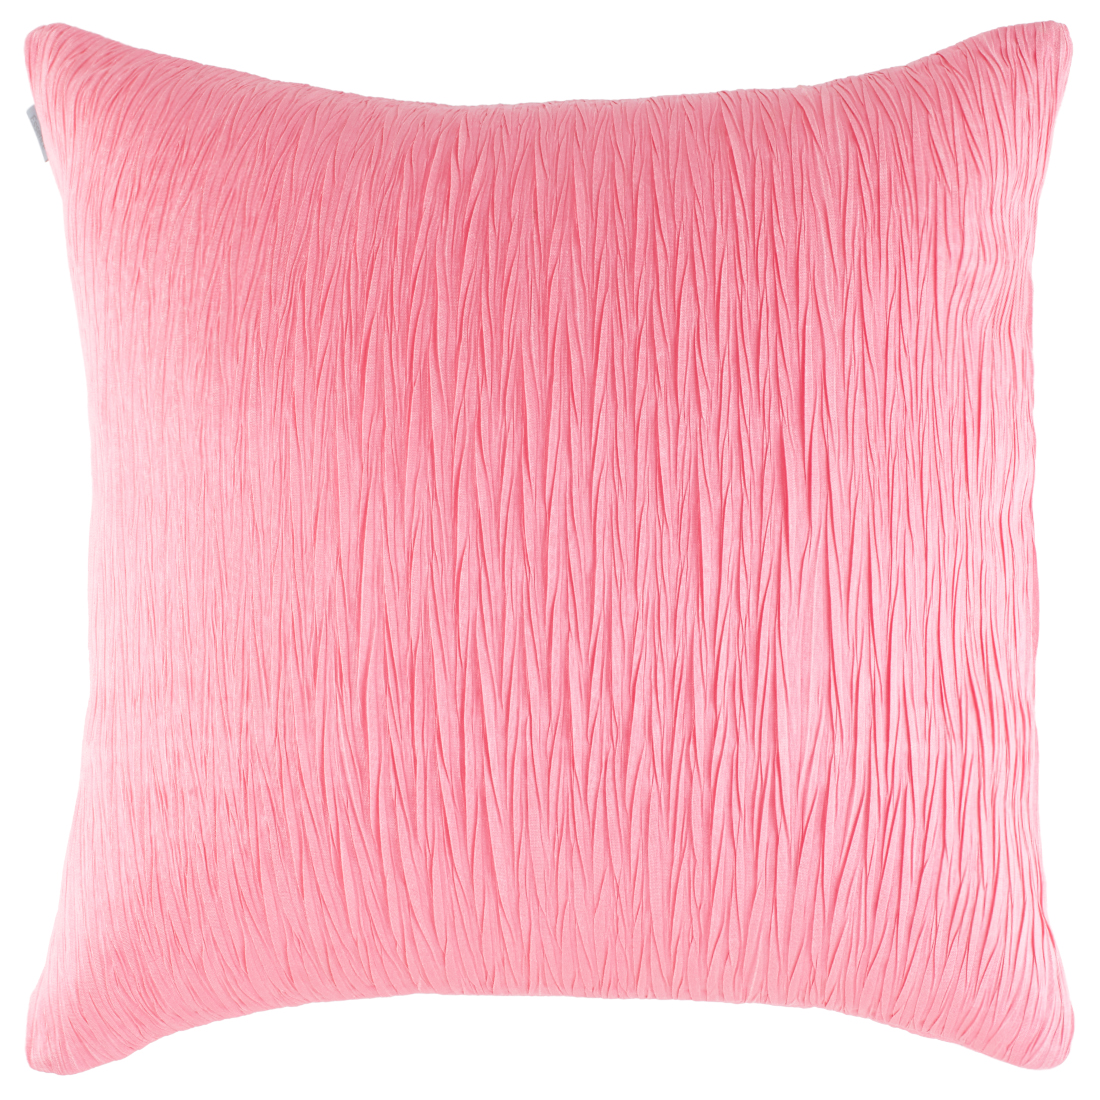 Blossom Polyester Cushion Covers in Pink Colour by Living Essence